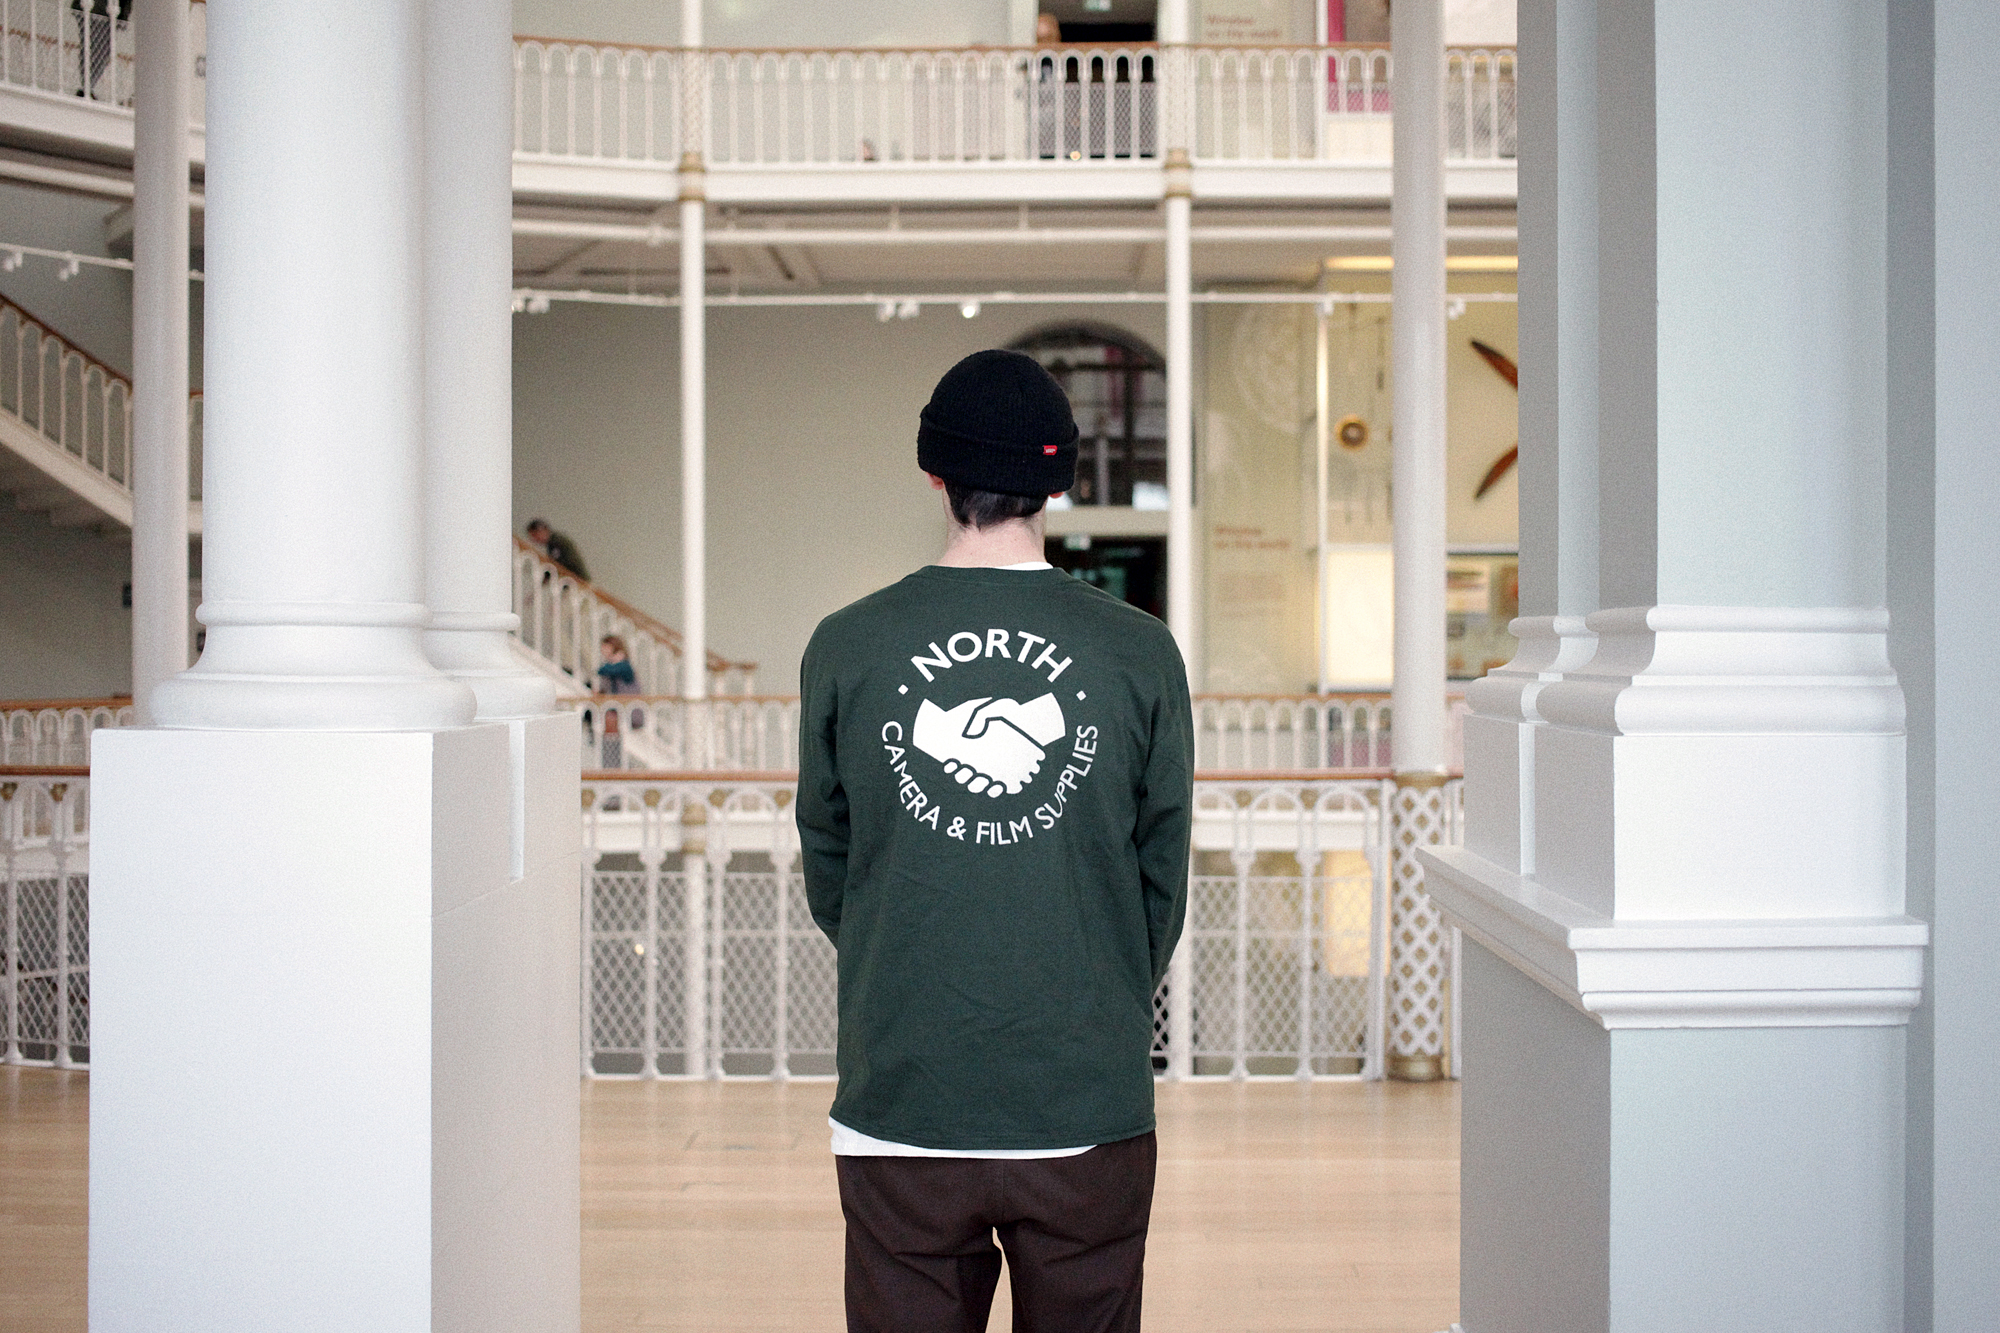 North 2018 Clothing Museum 27 S.jpg